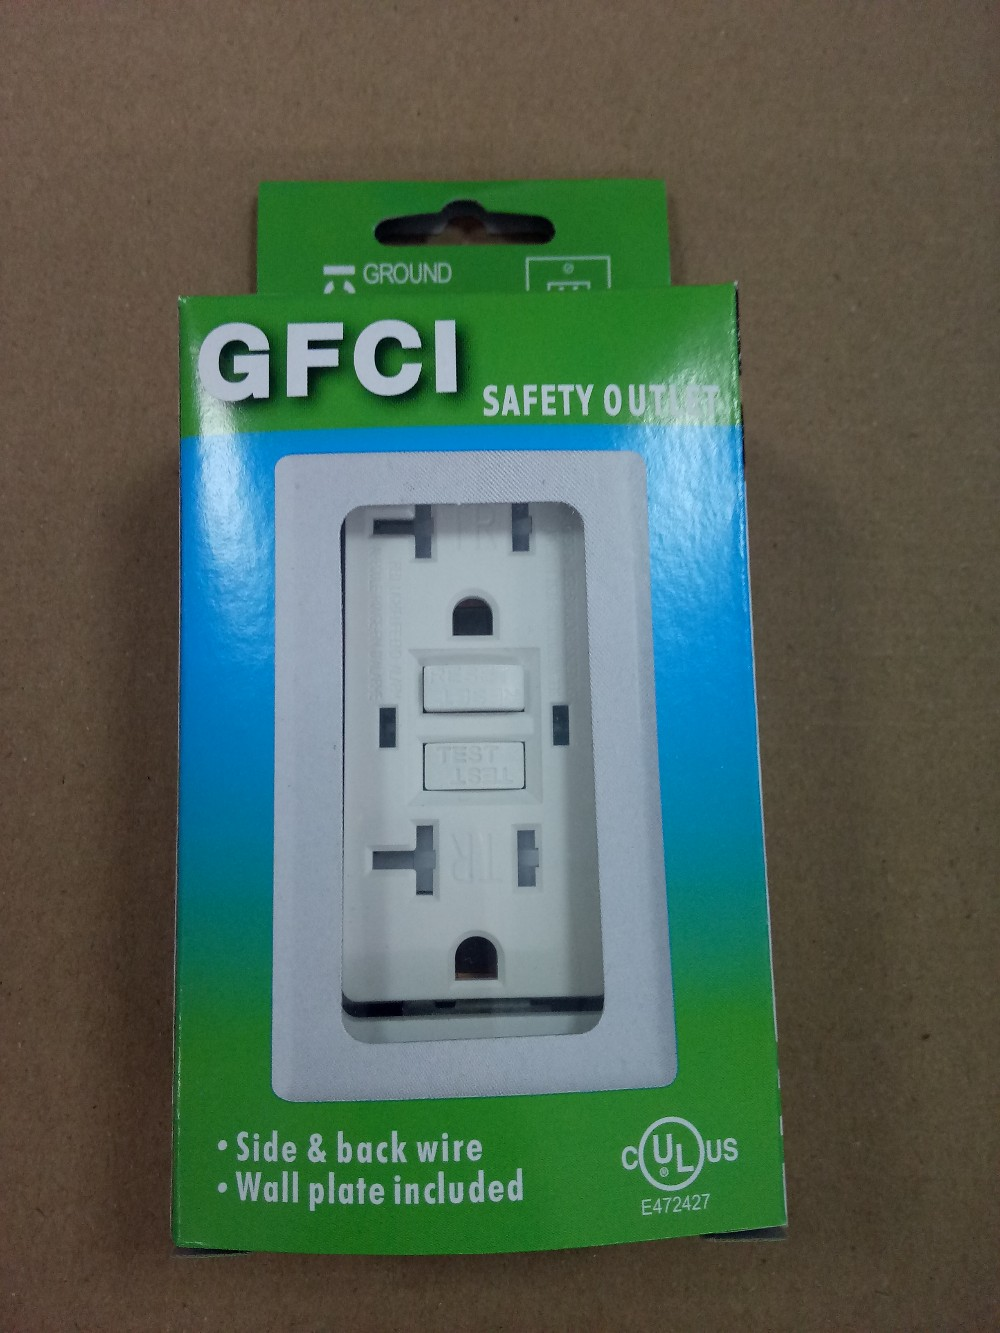 Marvelous ☆1pcs GFCI Wall Outlet (with Wall Plate) In Color (Green/Blue/Red) Box, 10  Boxes/inner And 5 Inners/carton.Size: 38.5*31*23.5cm, G.W: 9.2KG